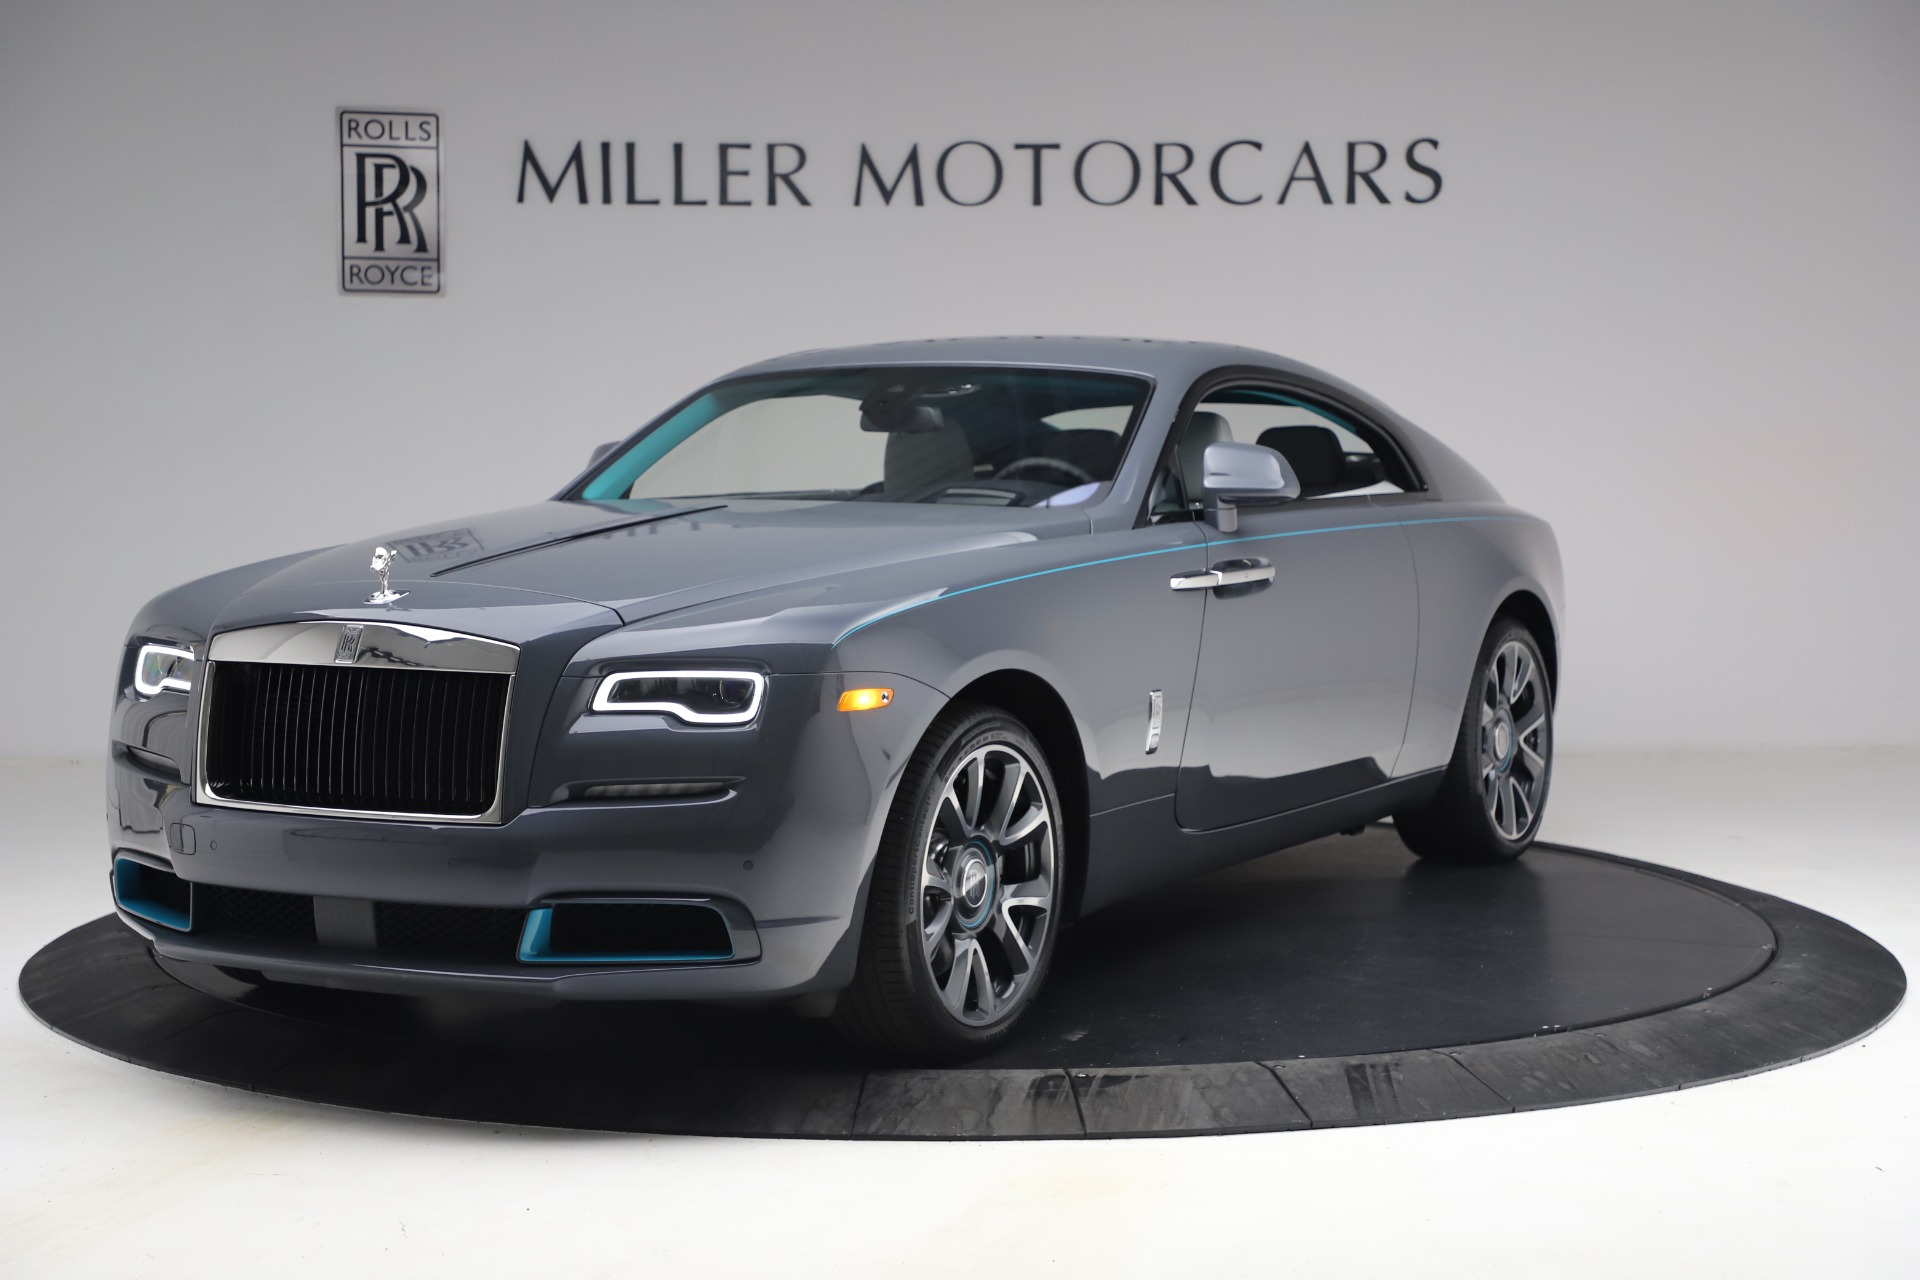 Used 2021 Rolls-Royce Wraith for sale $444,275 at Rolls-Royce Motor Cars Greenwich in Greenwich CT 06830 1